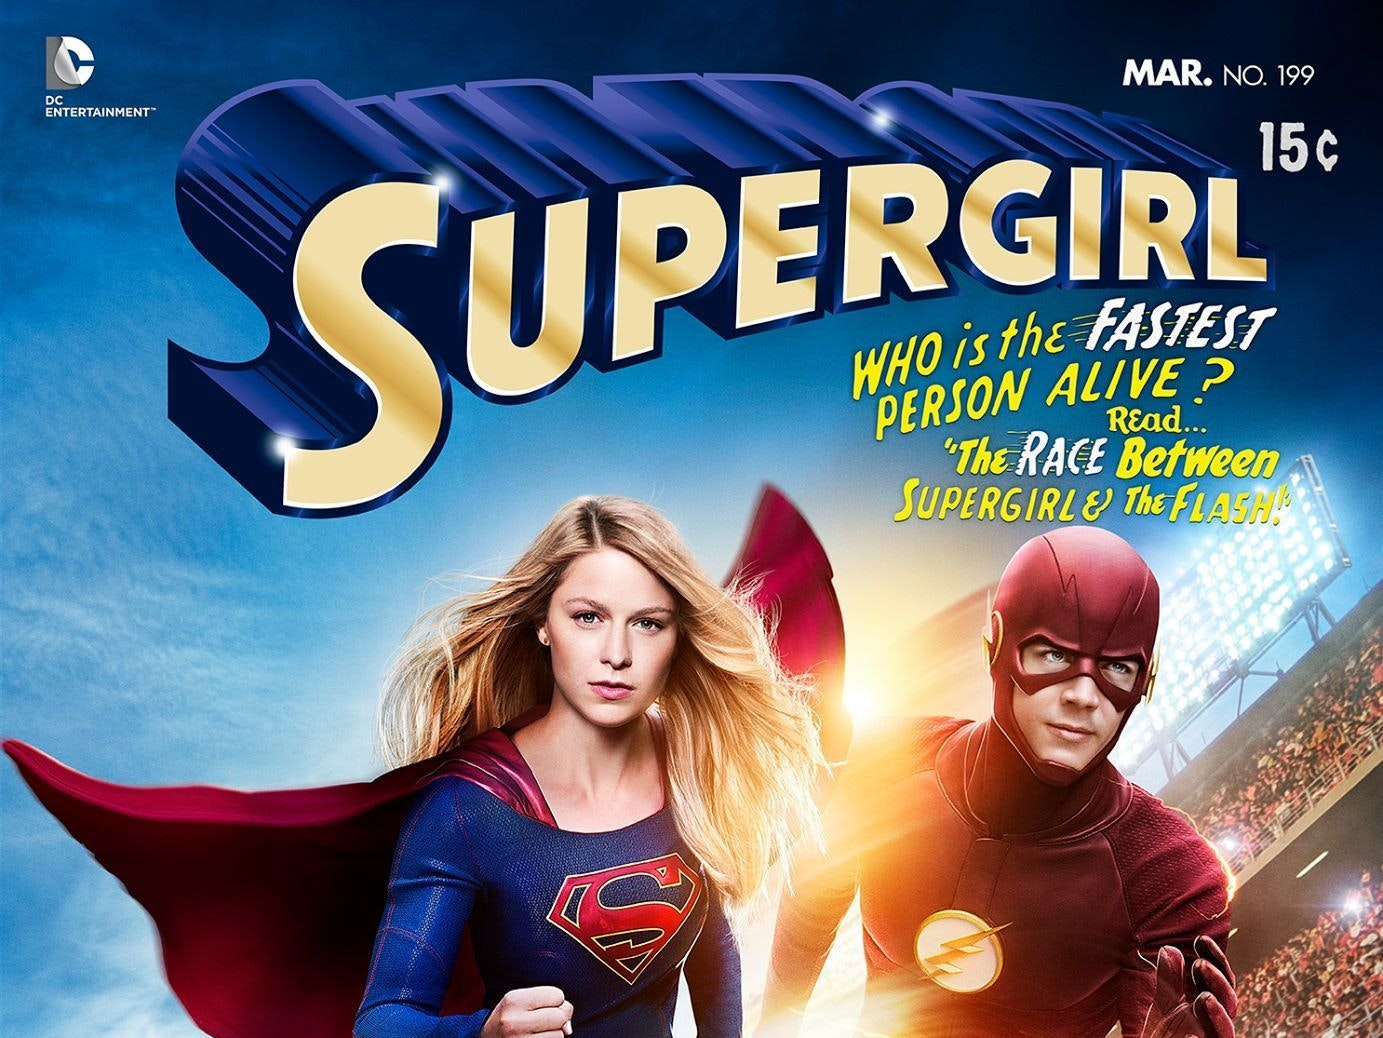 DC Comics Television Is Now Primed for 'Crisis' and 'Supergirl' Must Be the Center